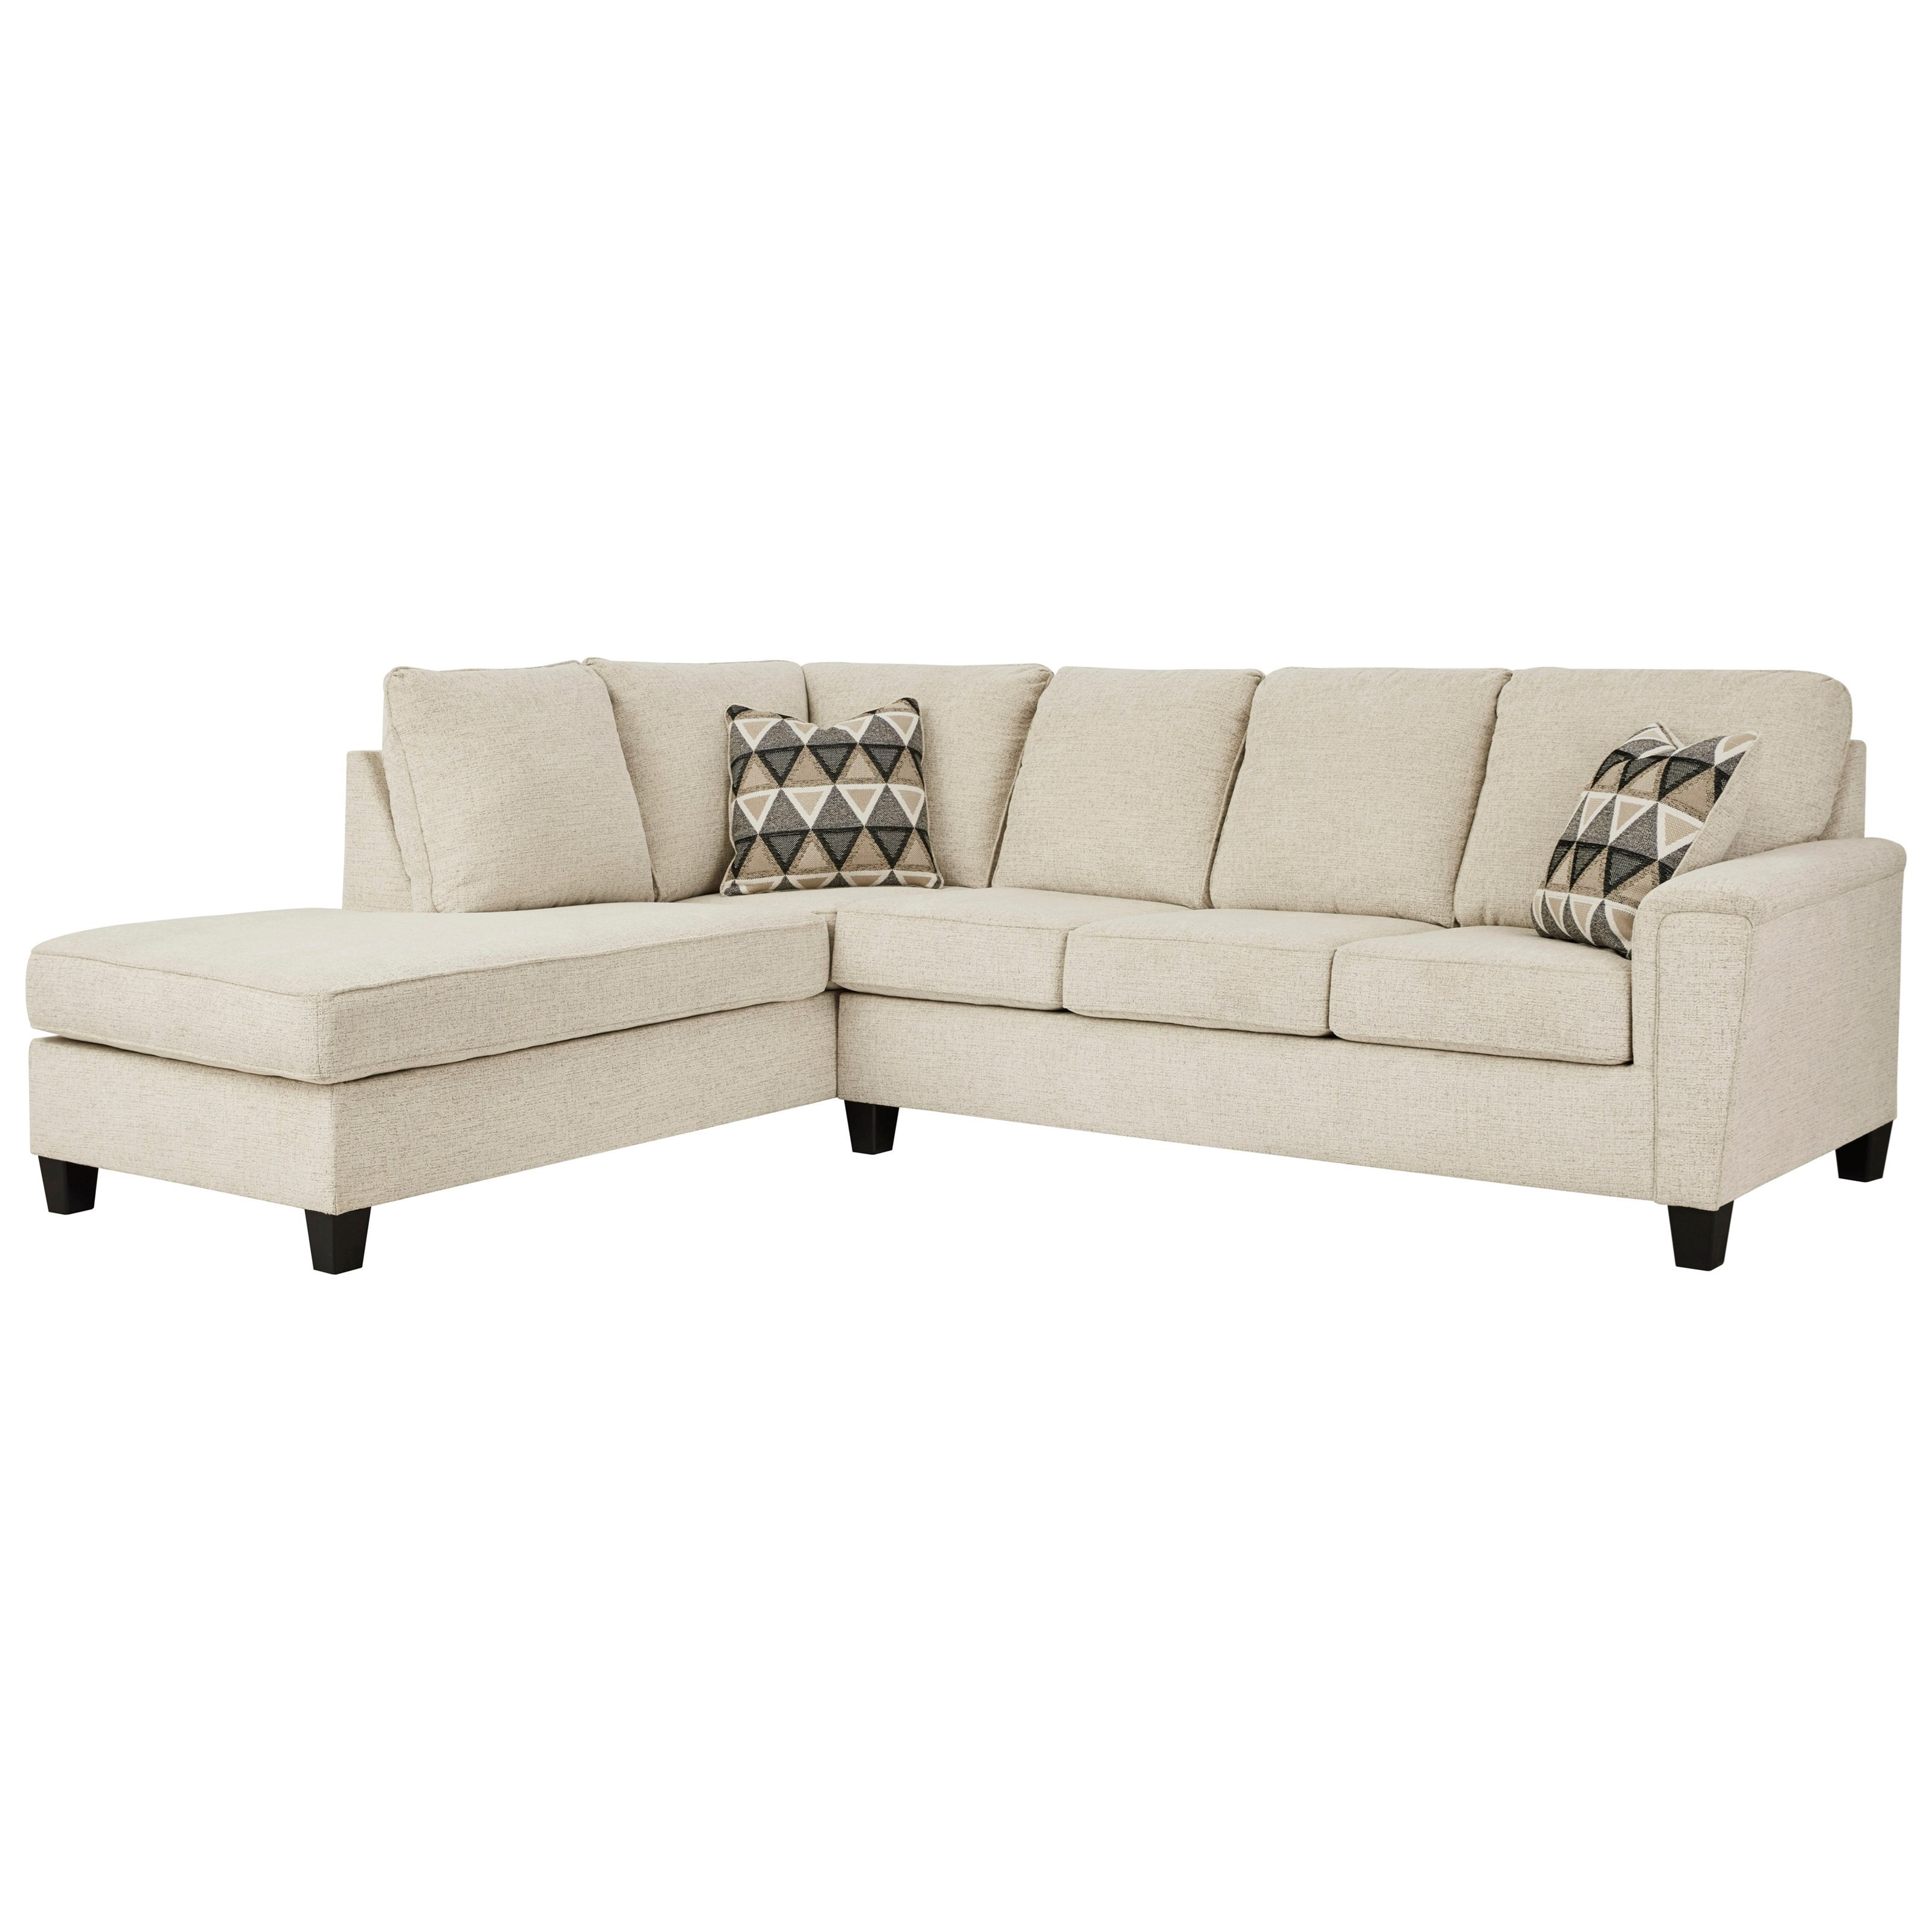 Abinger 2-Piece Sectional w/ Chaise and Sleeper by Signature Design by Ashley at Factory Direct Furniture